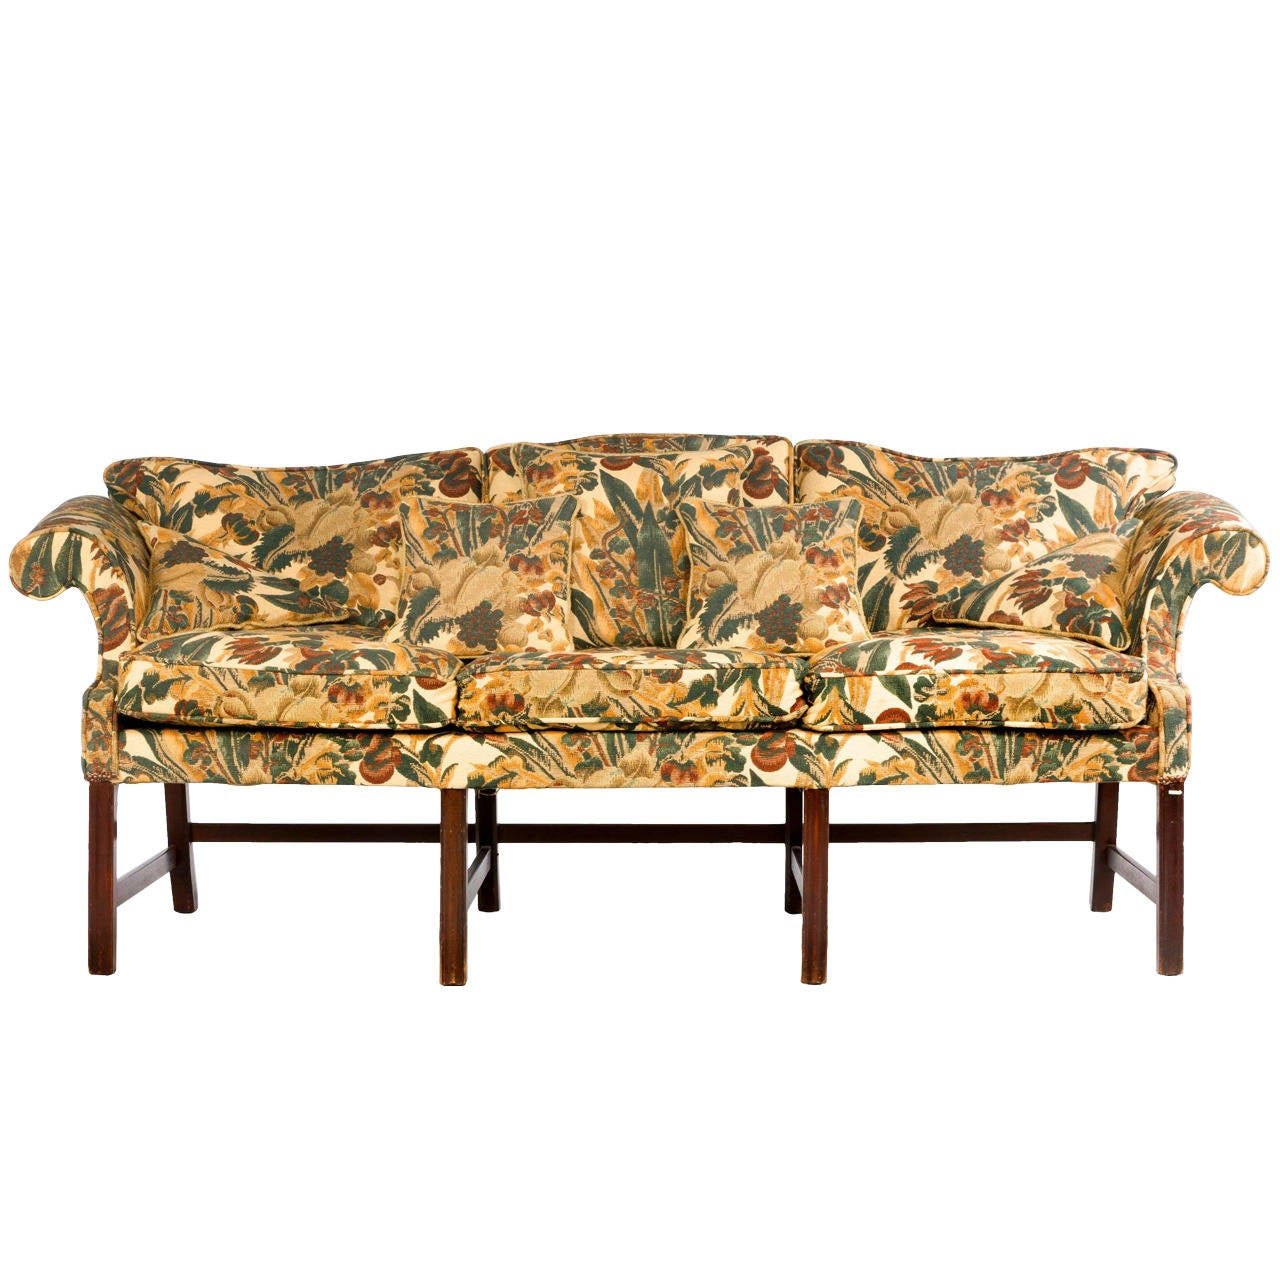 Chippendale Period Camel Back Sofa At 1stdibs